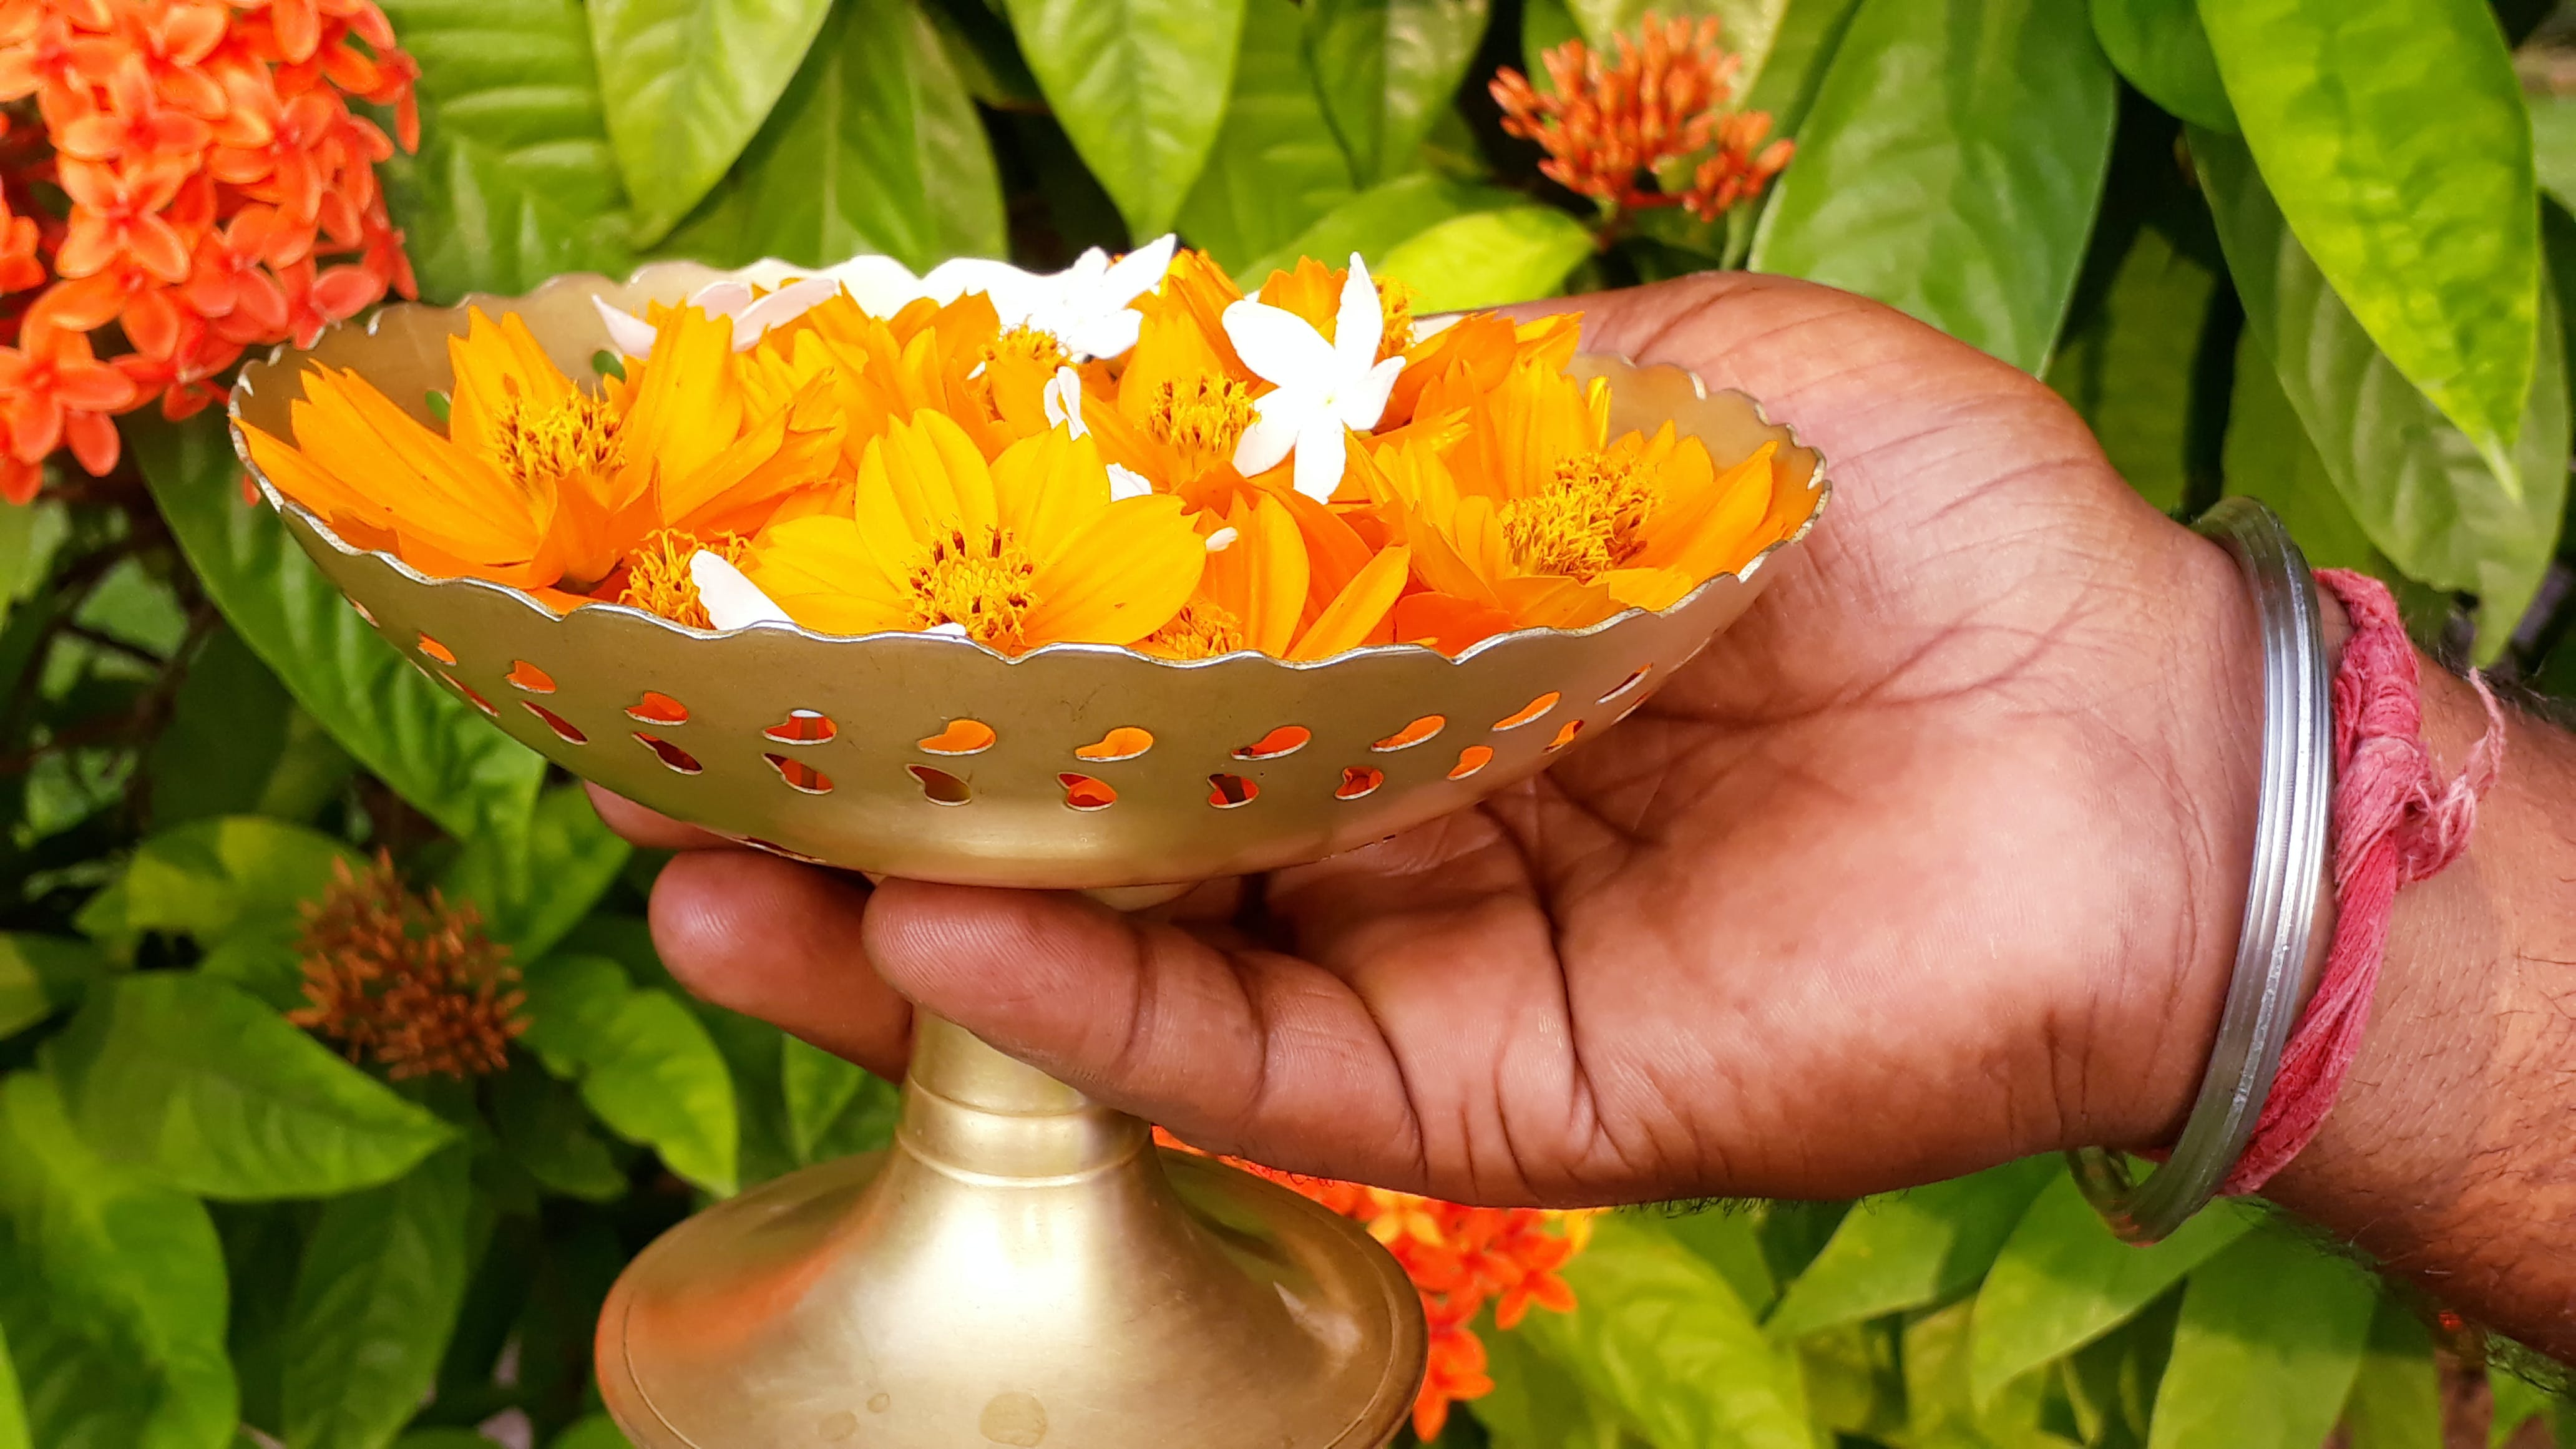 Free stock photo of flowers, flowers for worship, holding container of flowers